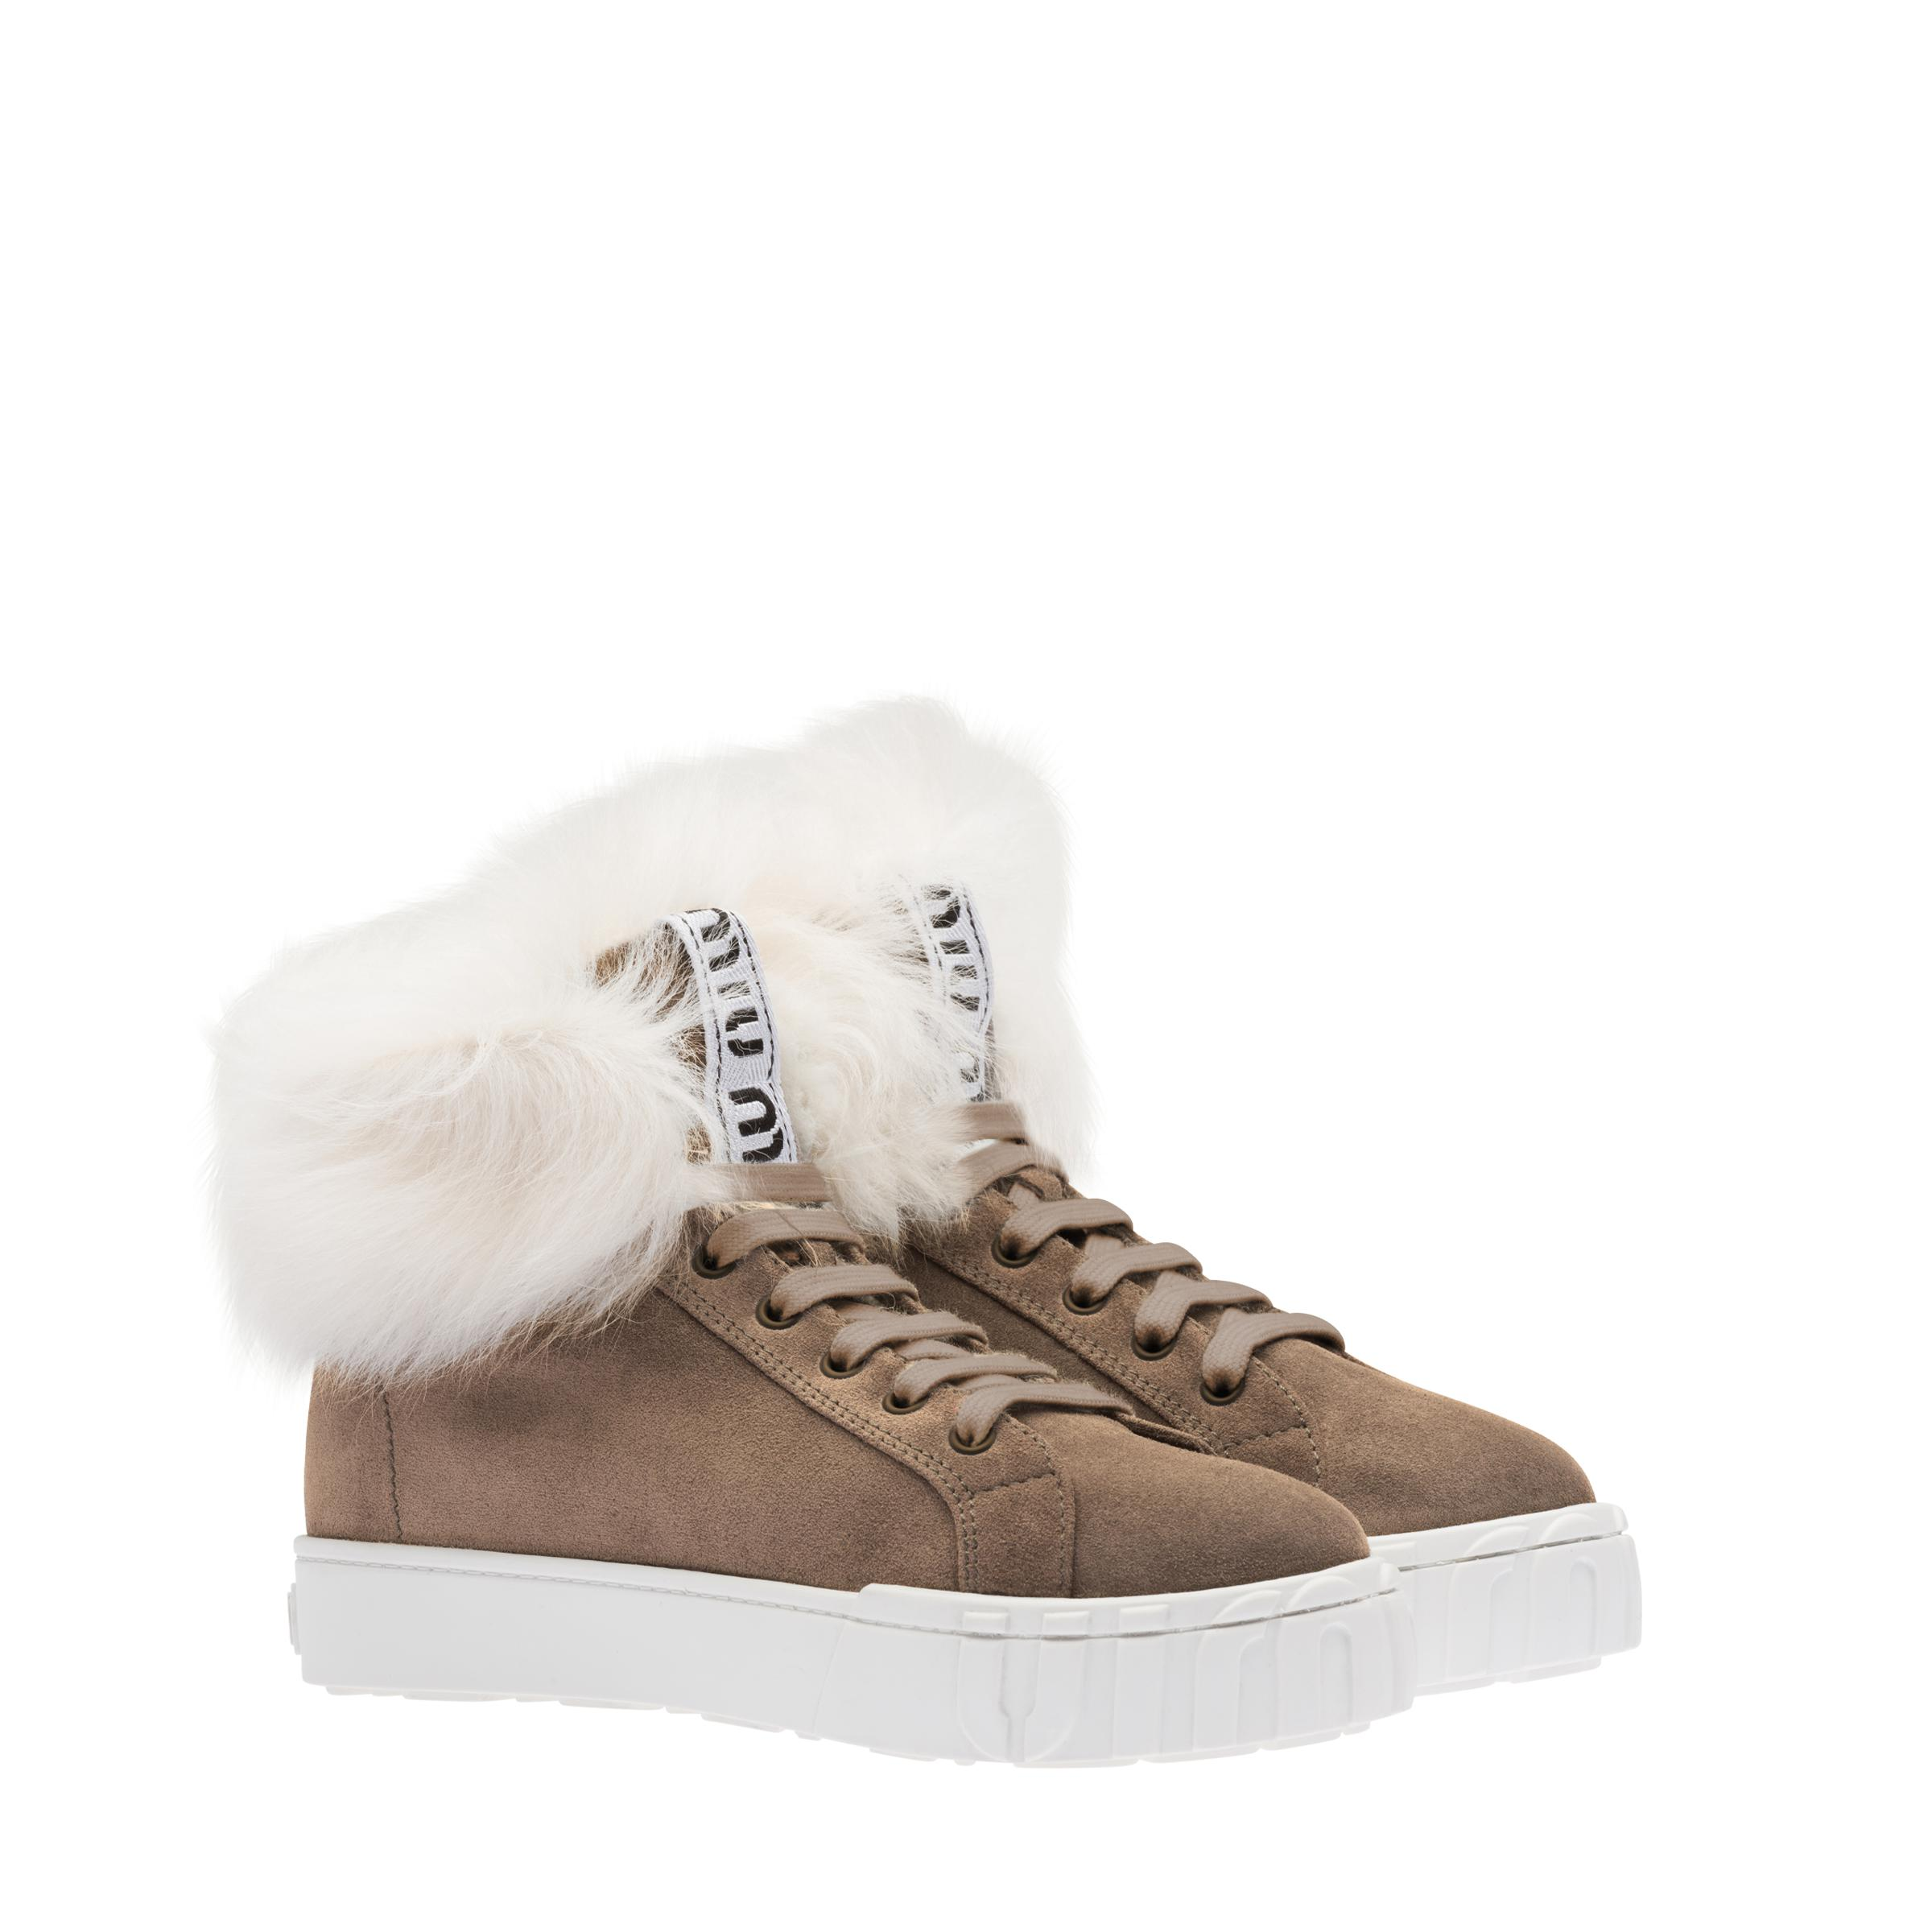 Suede High-top Sneakers Women Mink-toned/natural